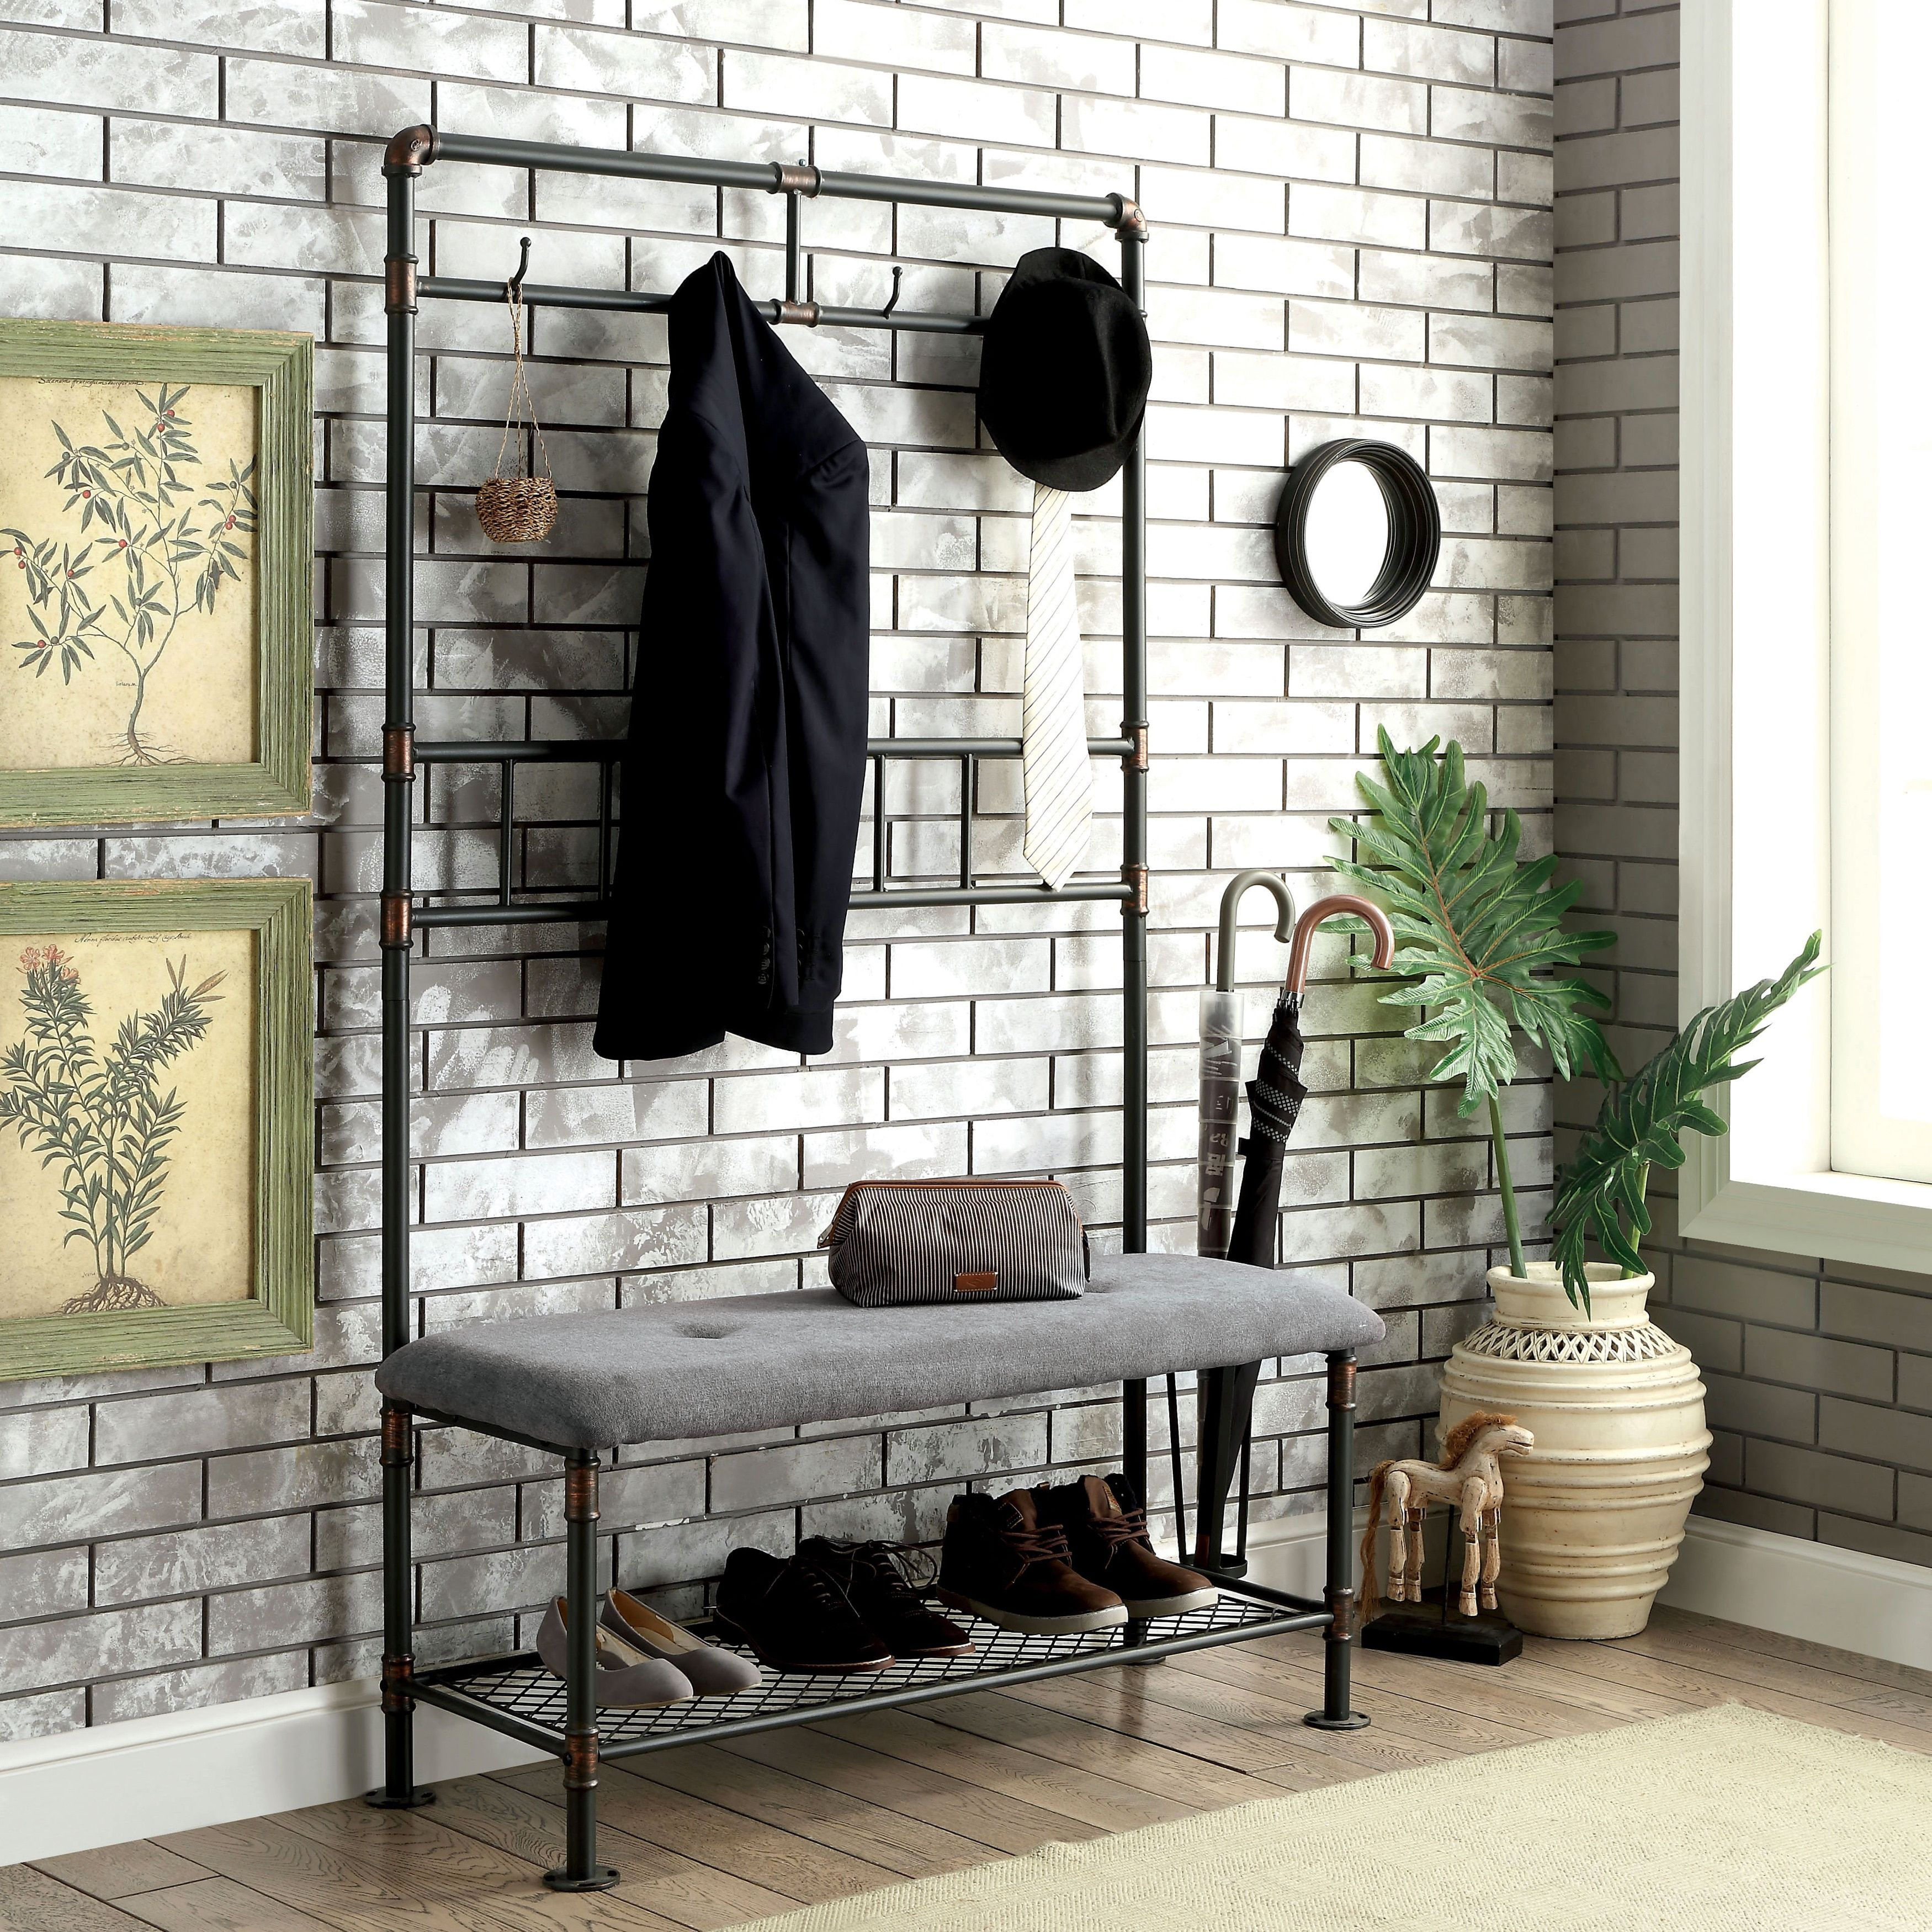 Hallway storage for coats  Furniture of America Revo Industrial PipeInspired inch Sand